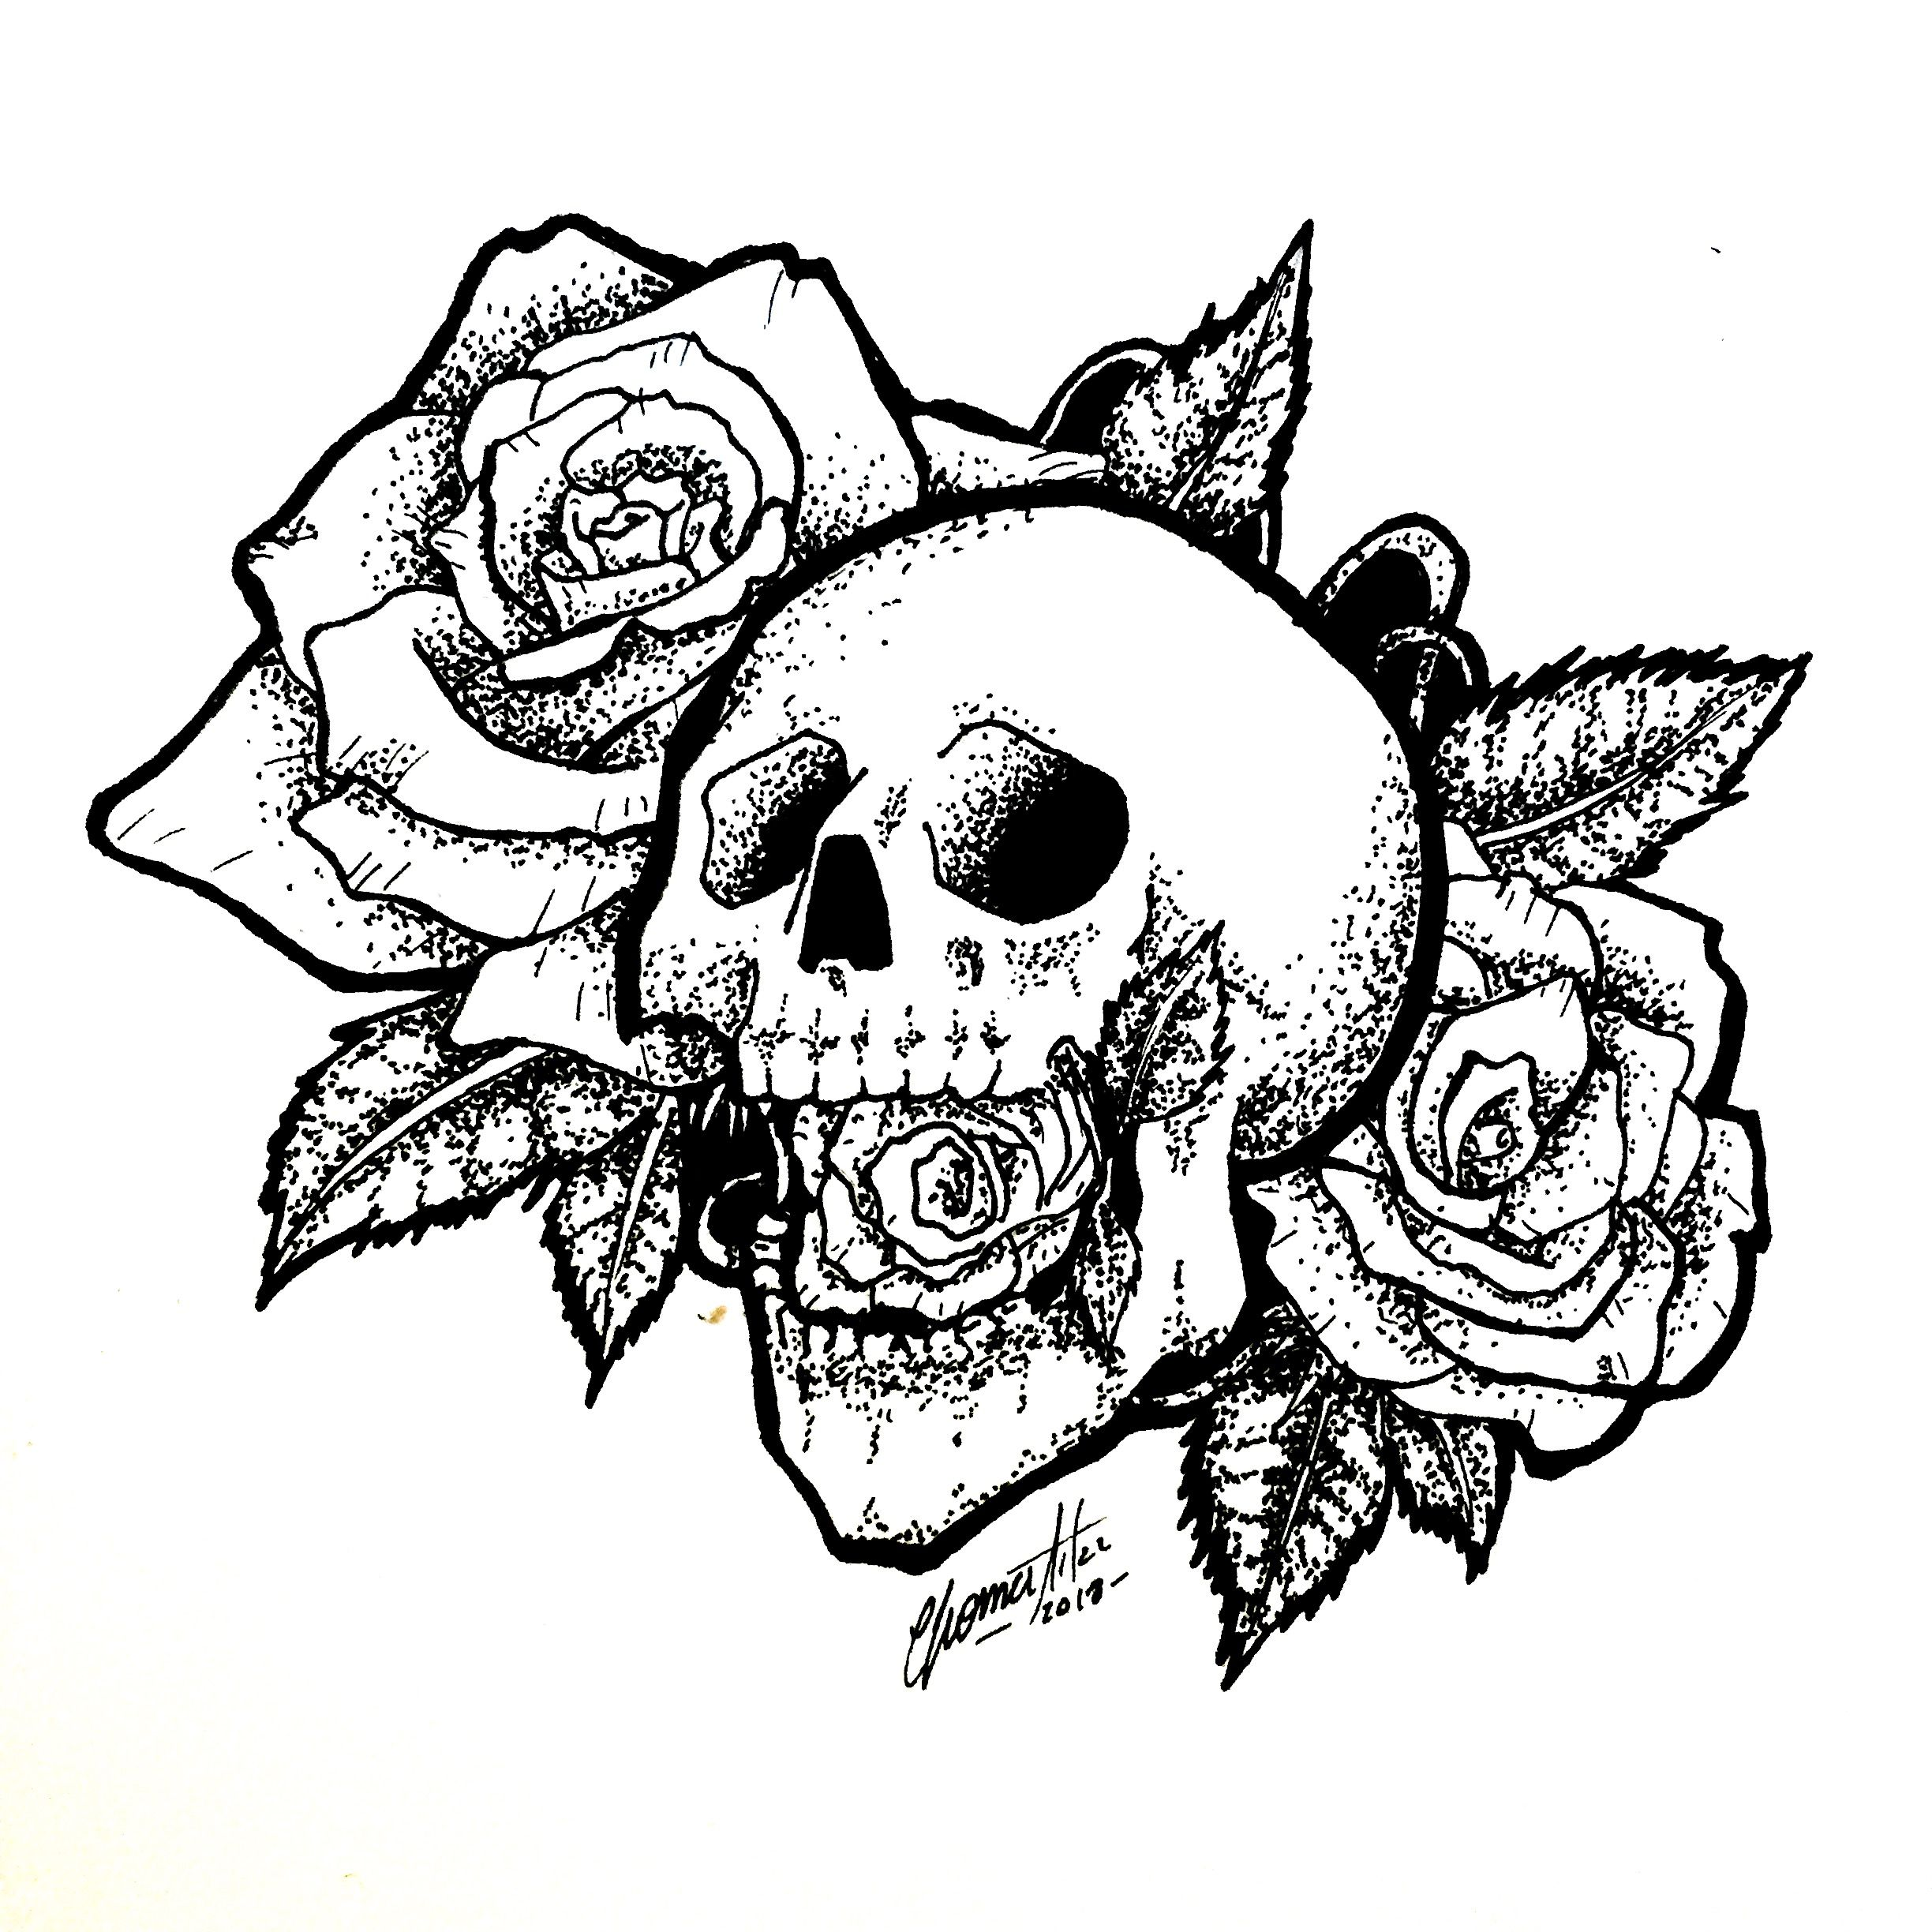 Gallery Skull Tattoo   Old school tattoo designs, Skull coloring pages ... is free HD wallpaper.